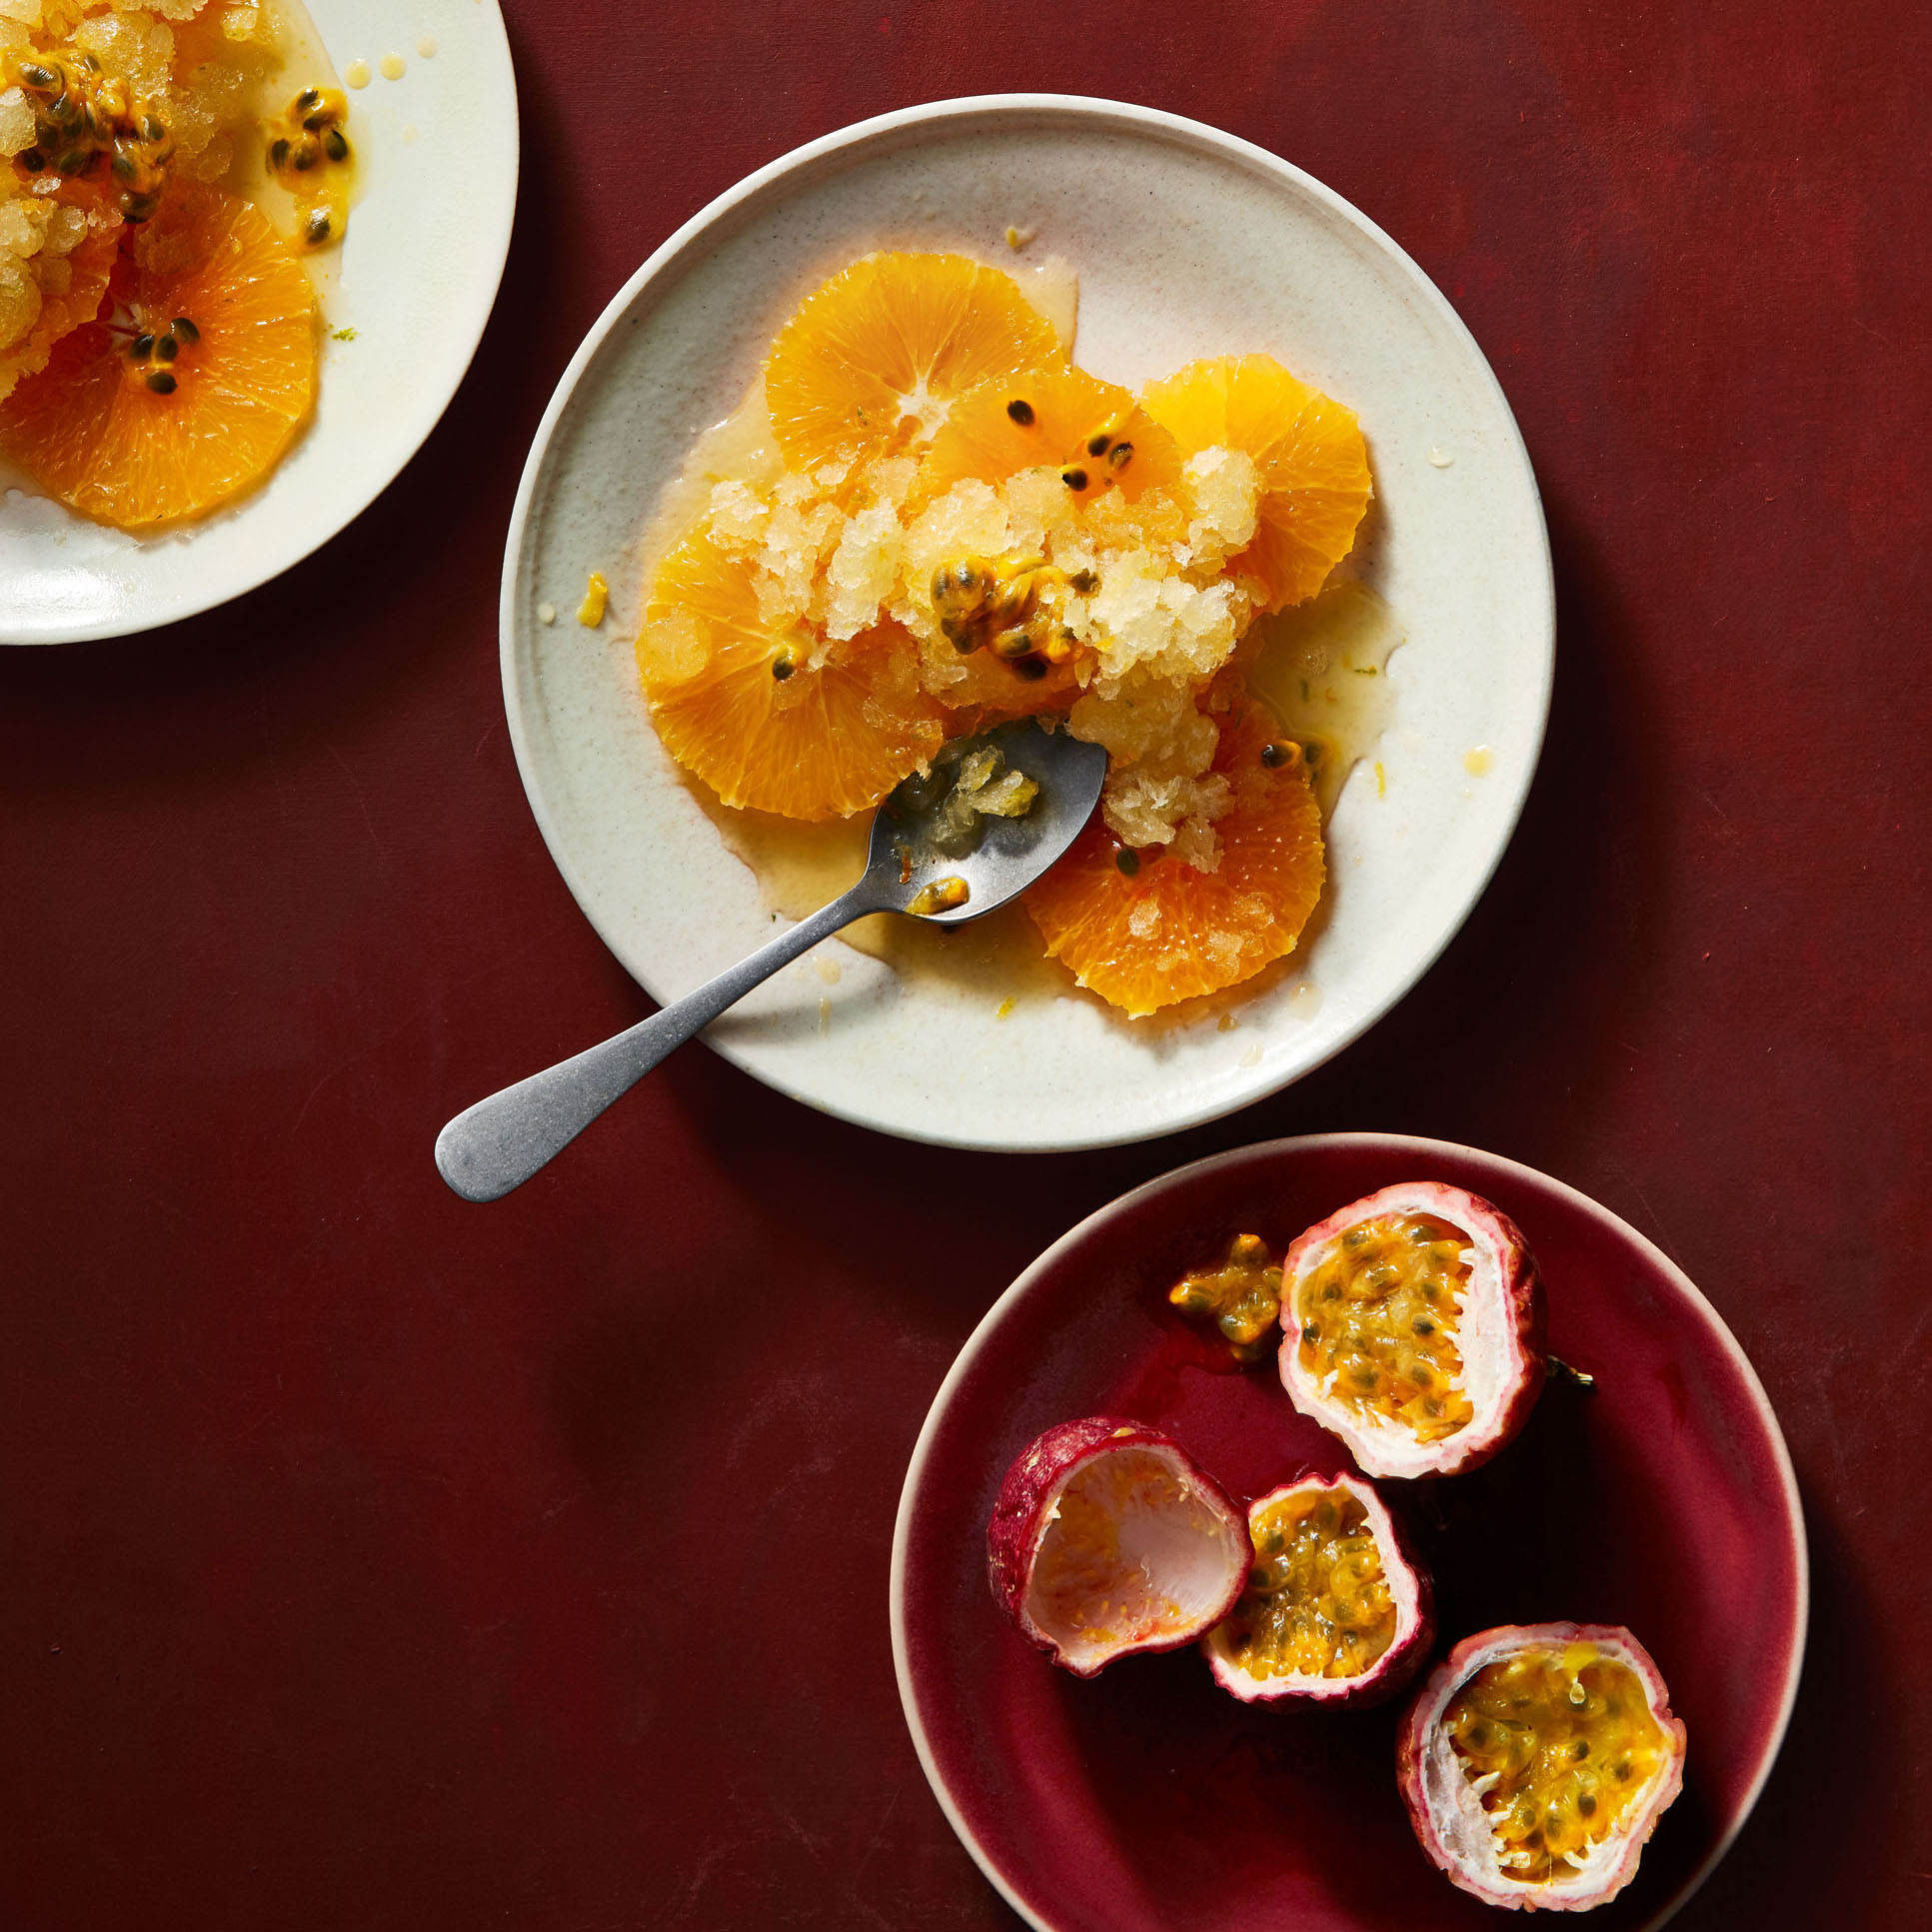 triple-citrus granita with passion fruit topped with oranges